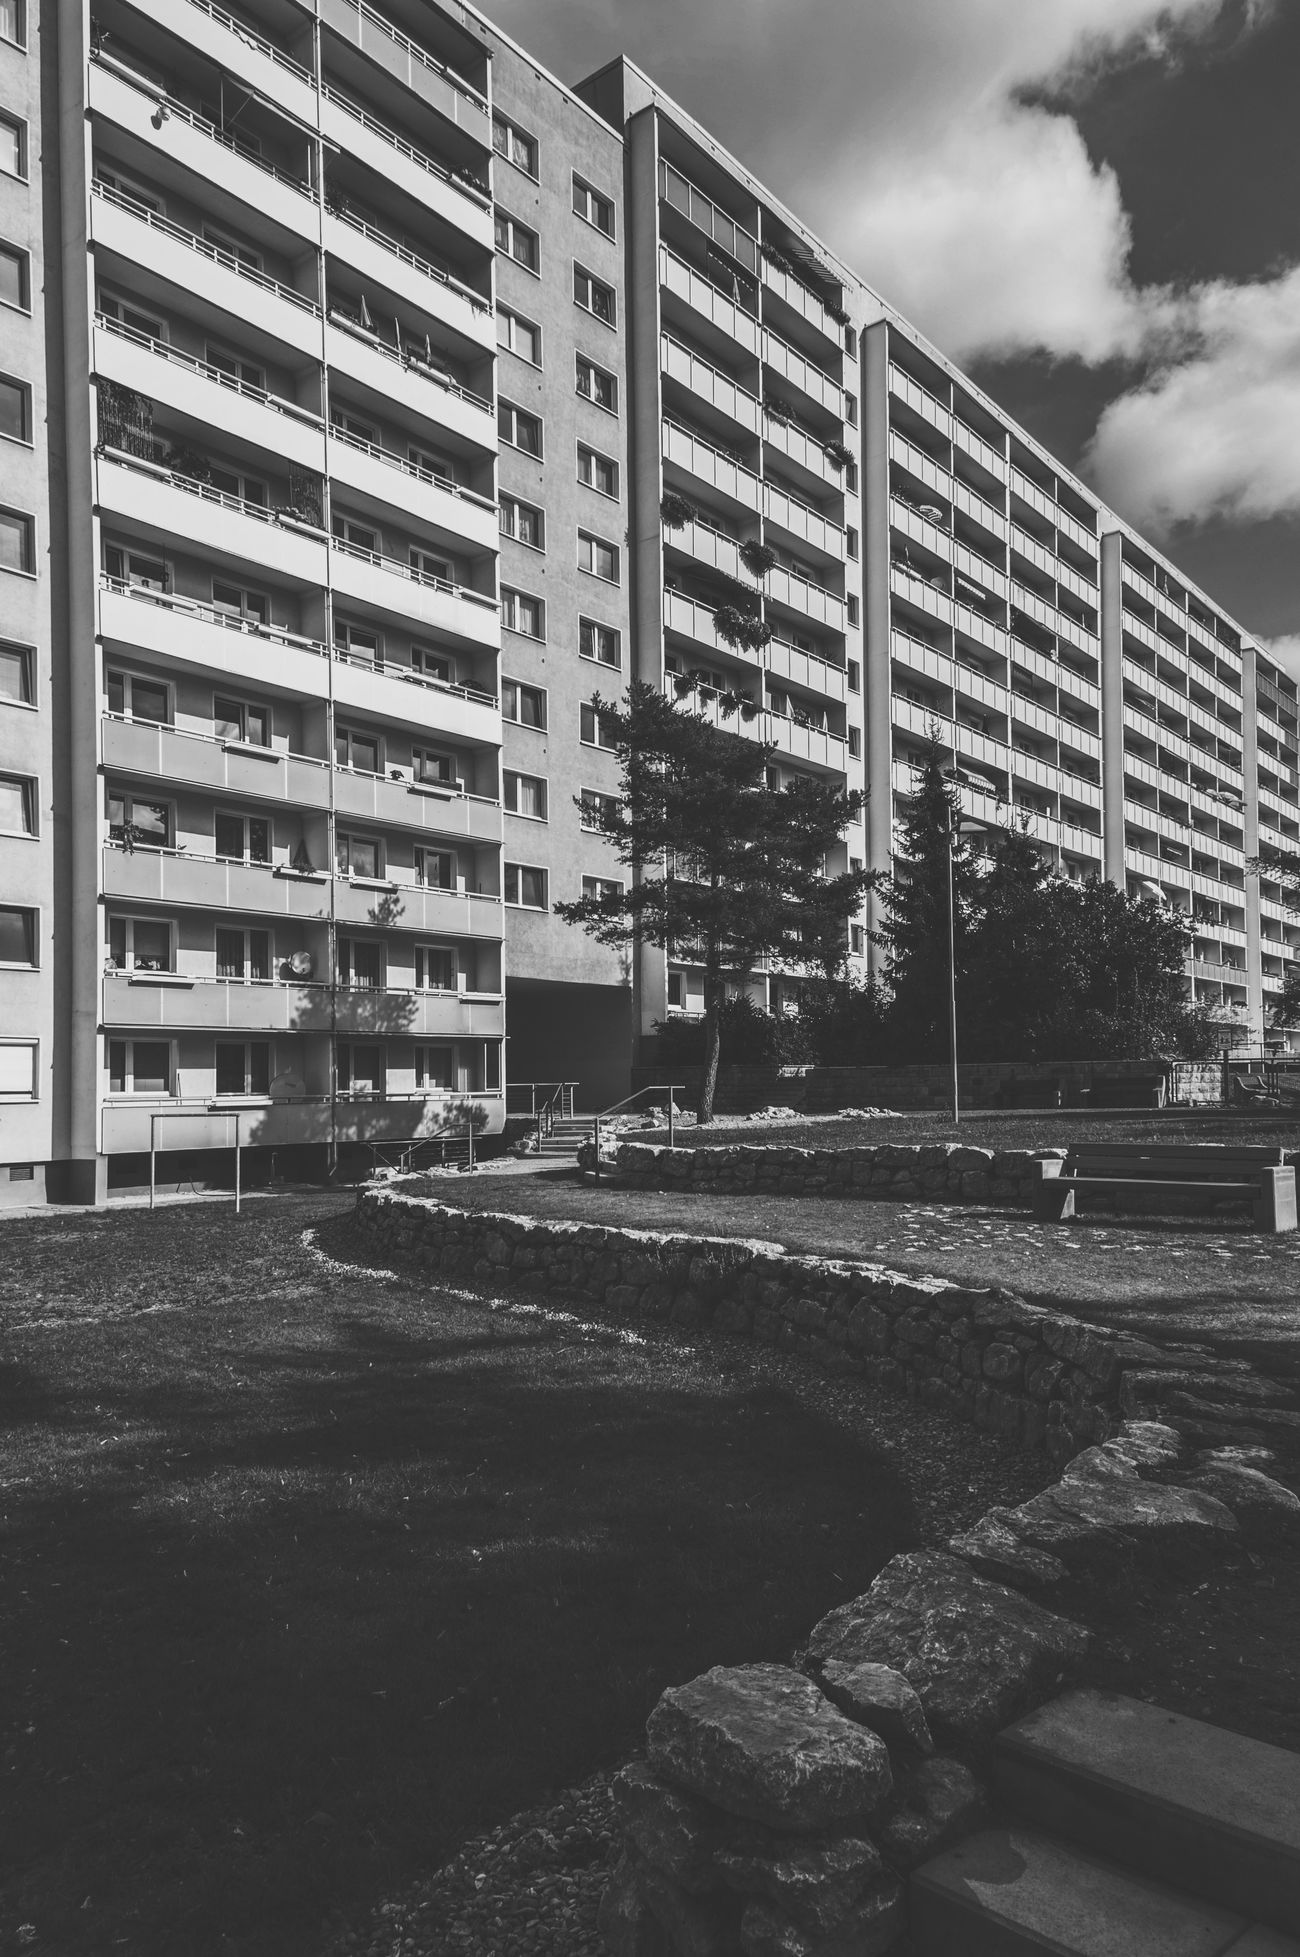 Plattenbau Prefabricated Houses Prefabricated Building Prefab House Houses Building Buildings Exterior View Building Exterior Jena Architecture Day No People Germany Black And White Blackandwhite Black & White Blackandwhite Photography Urban The Architect - 2016 EyeEm Awards